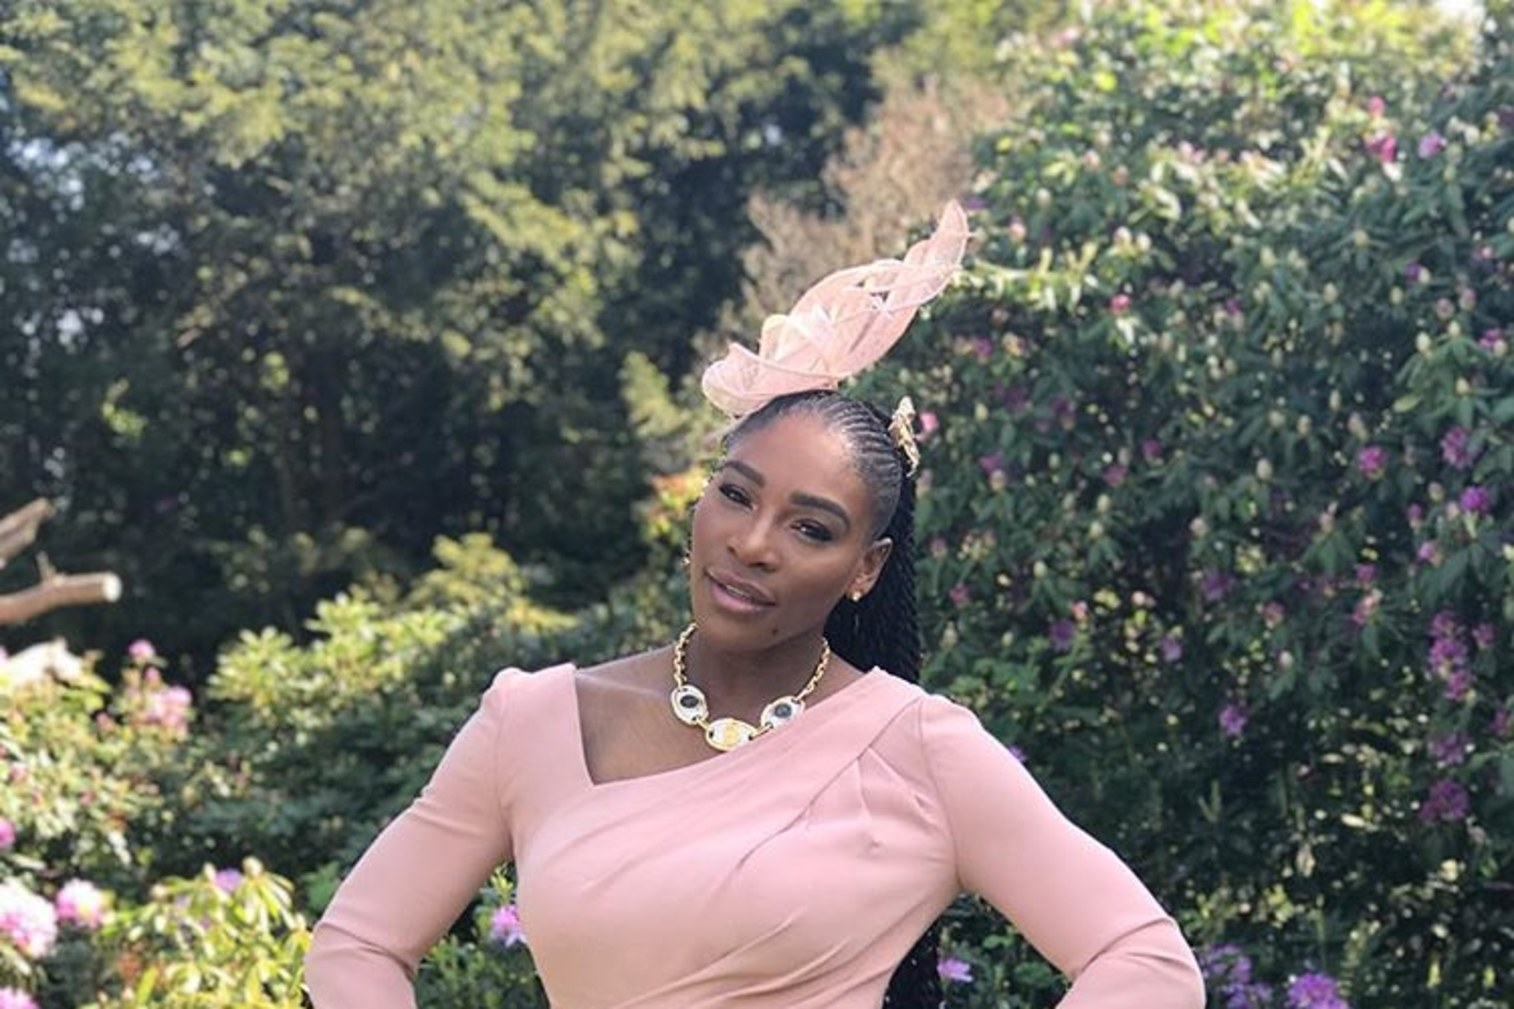 Serena Williams dressed for the royal wedding. Credit: Serena Williams IG